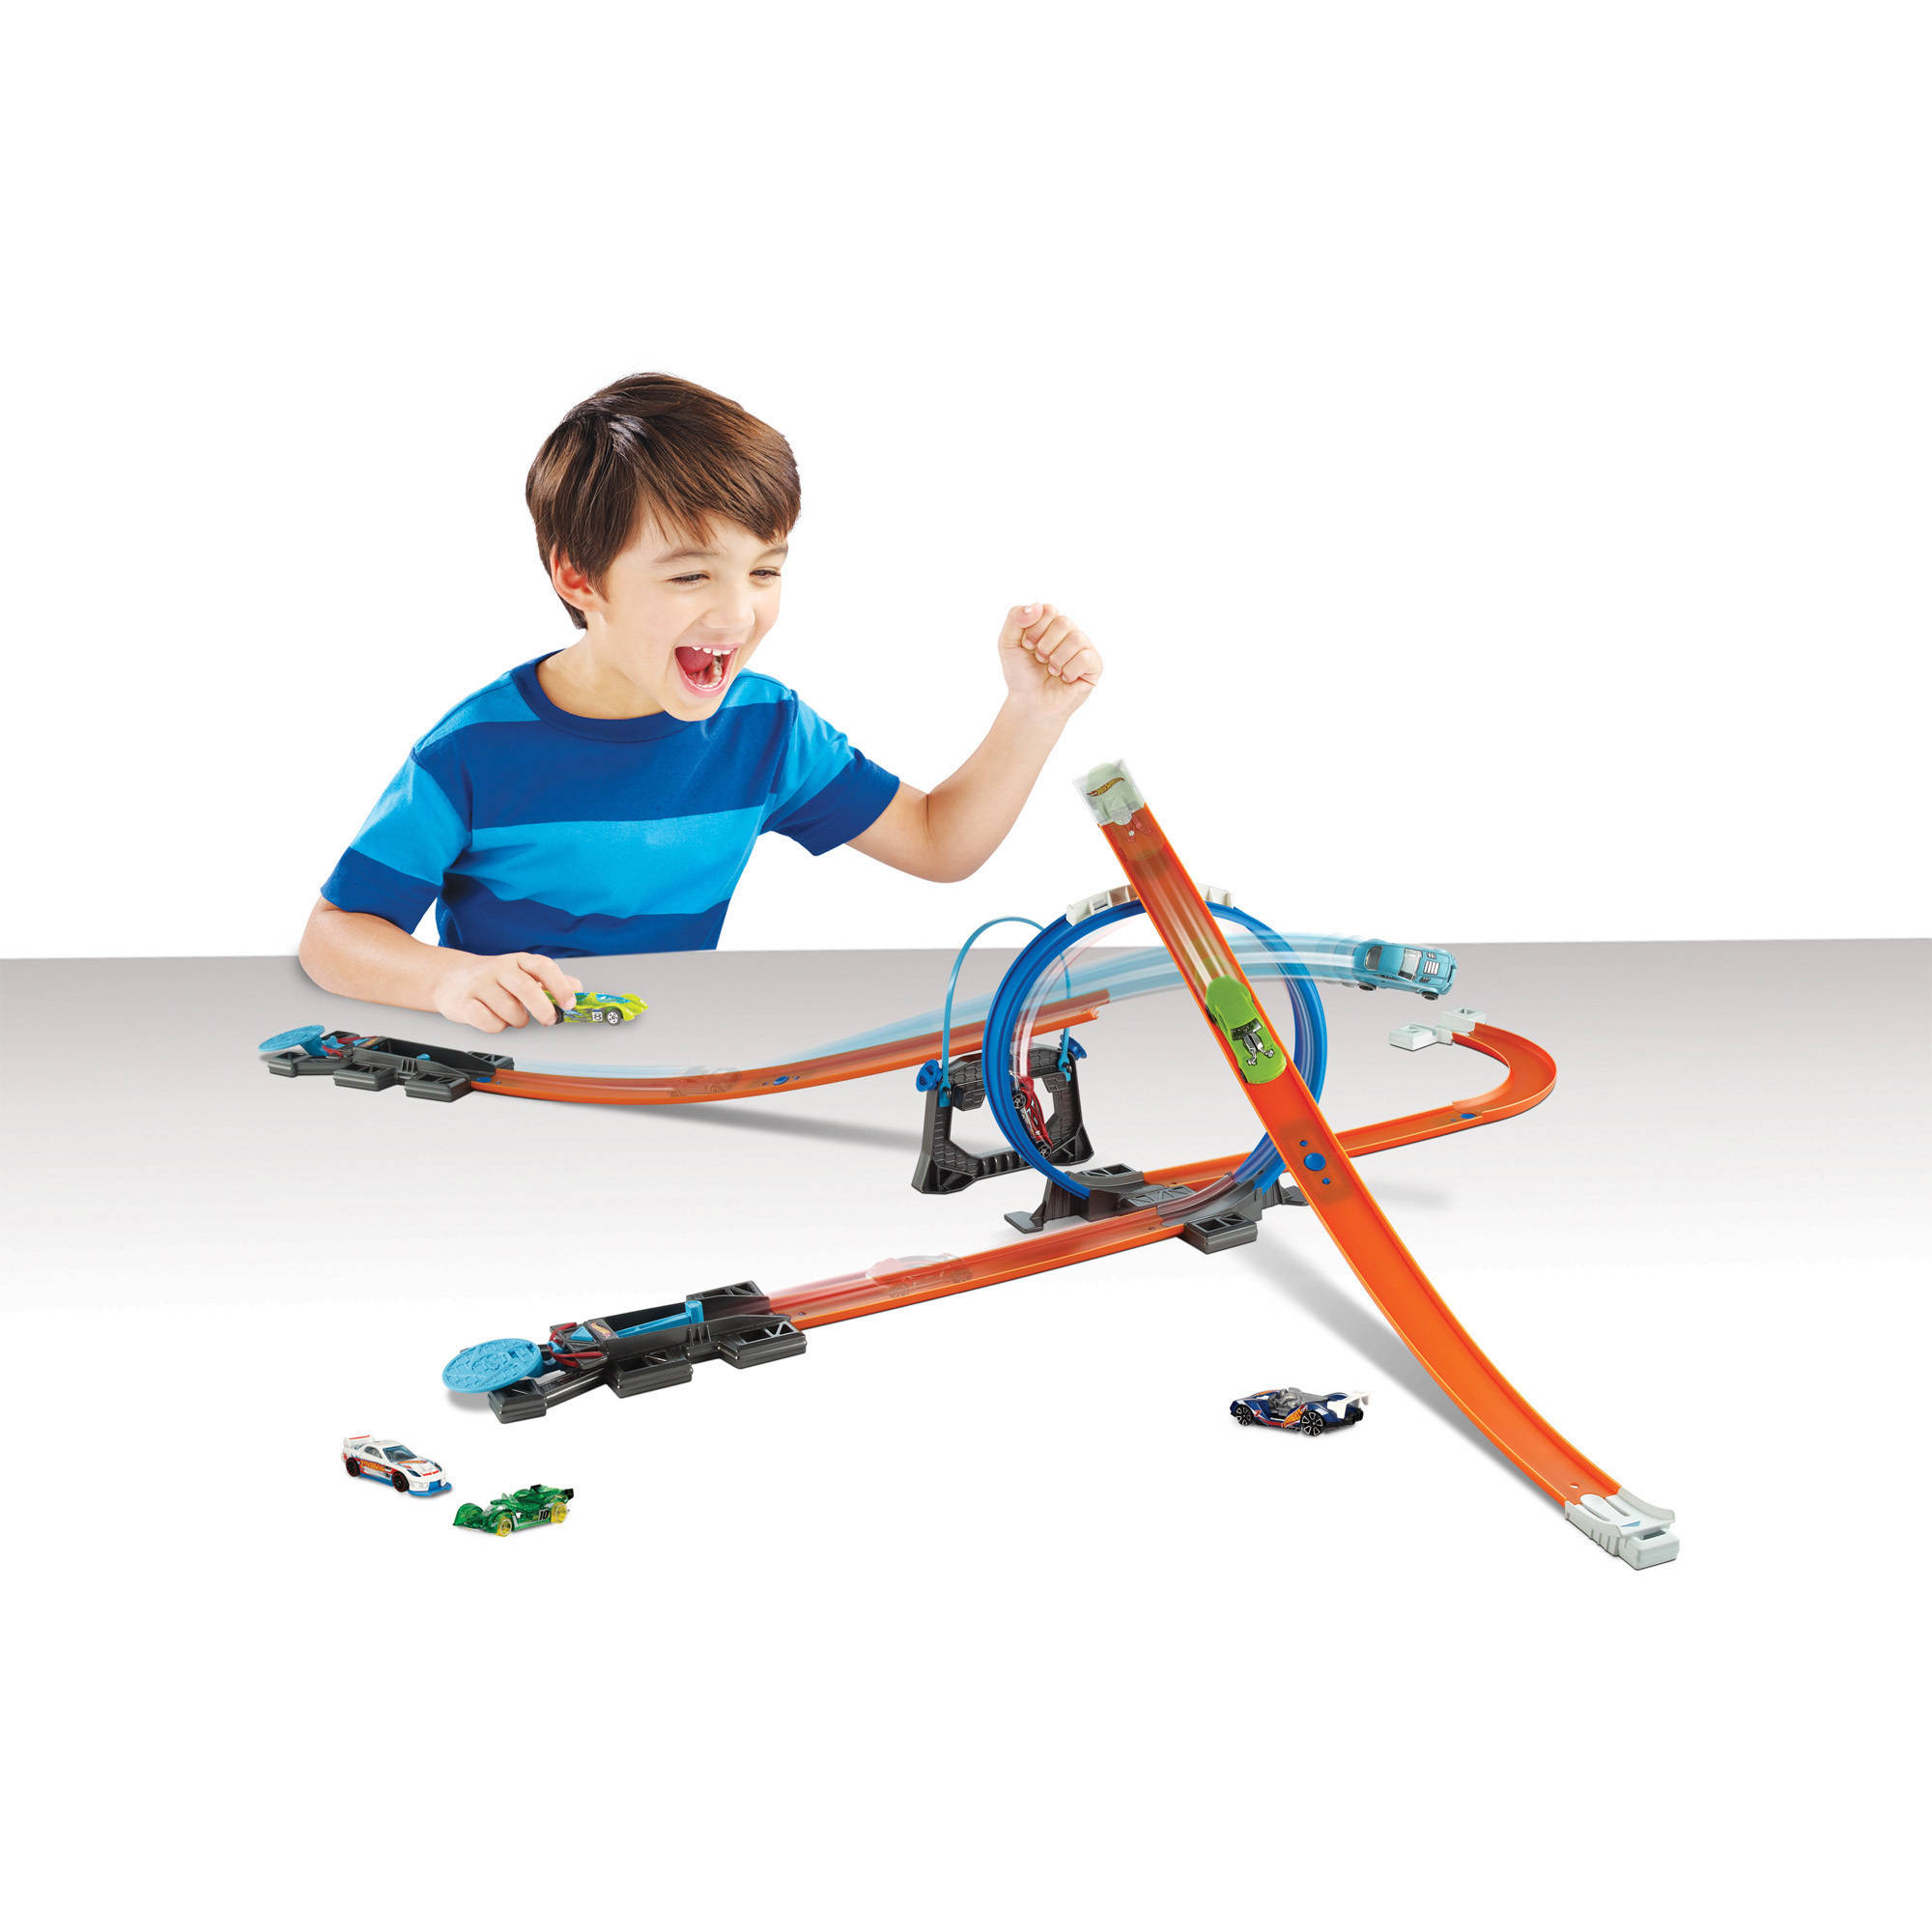 Hot Wheels Track Builder Starter Kit Playset